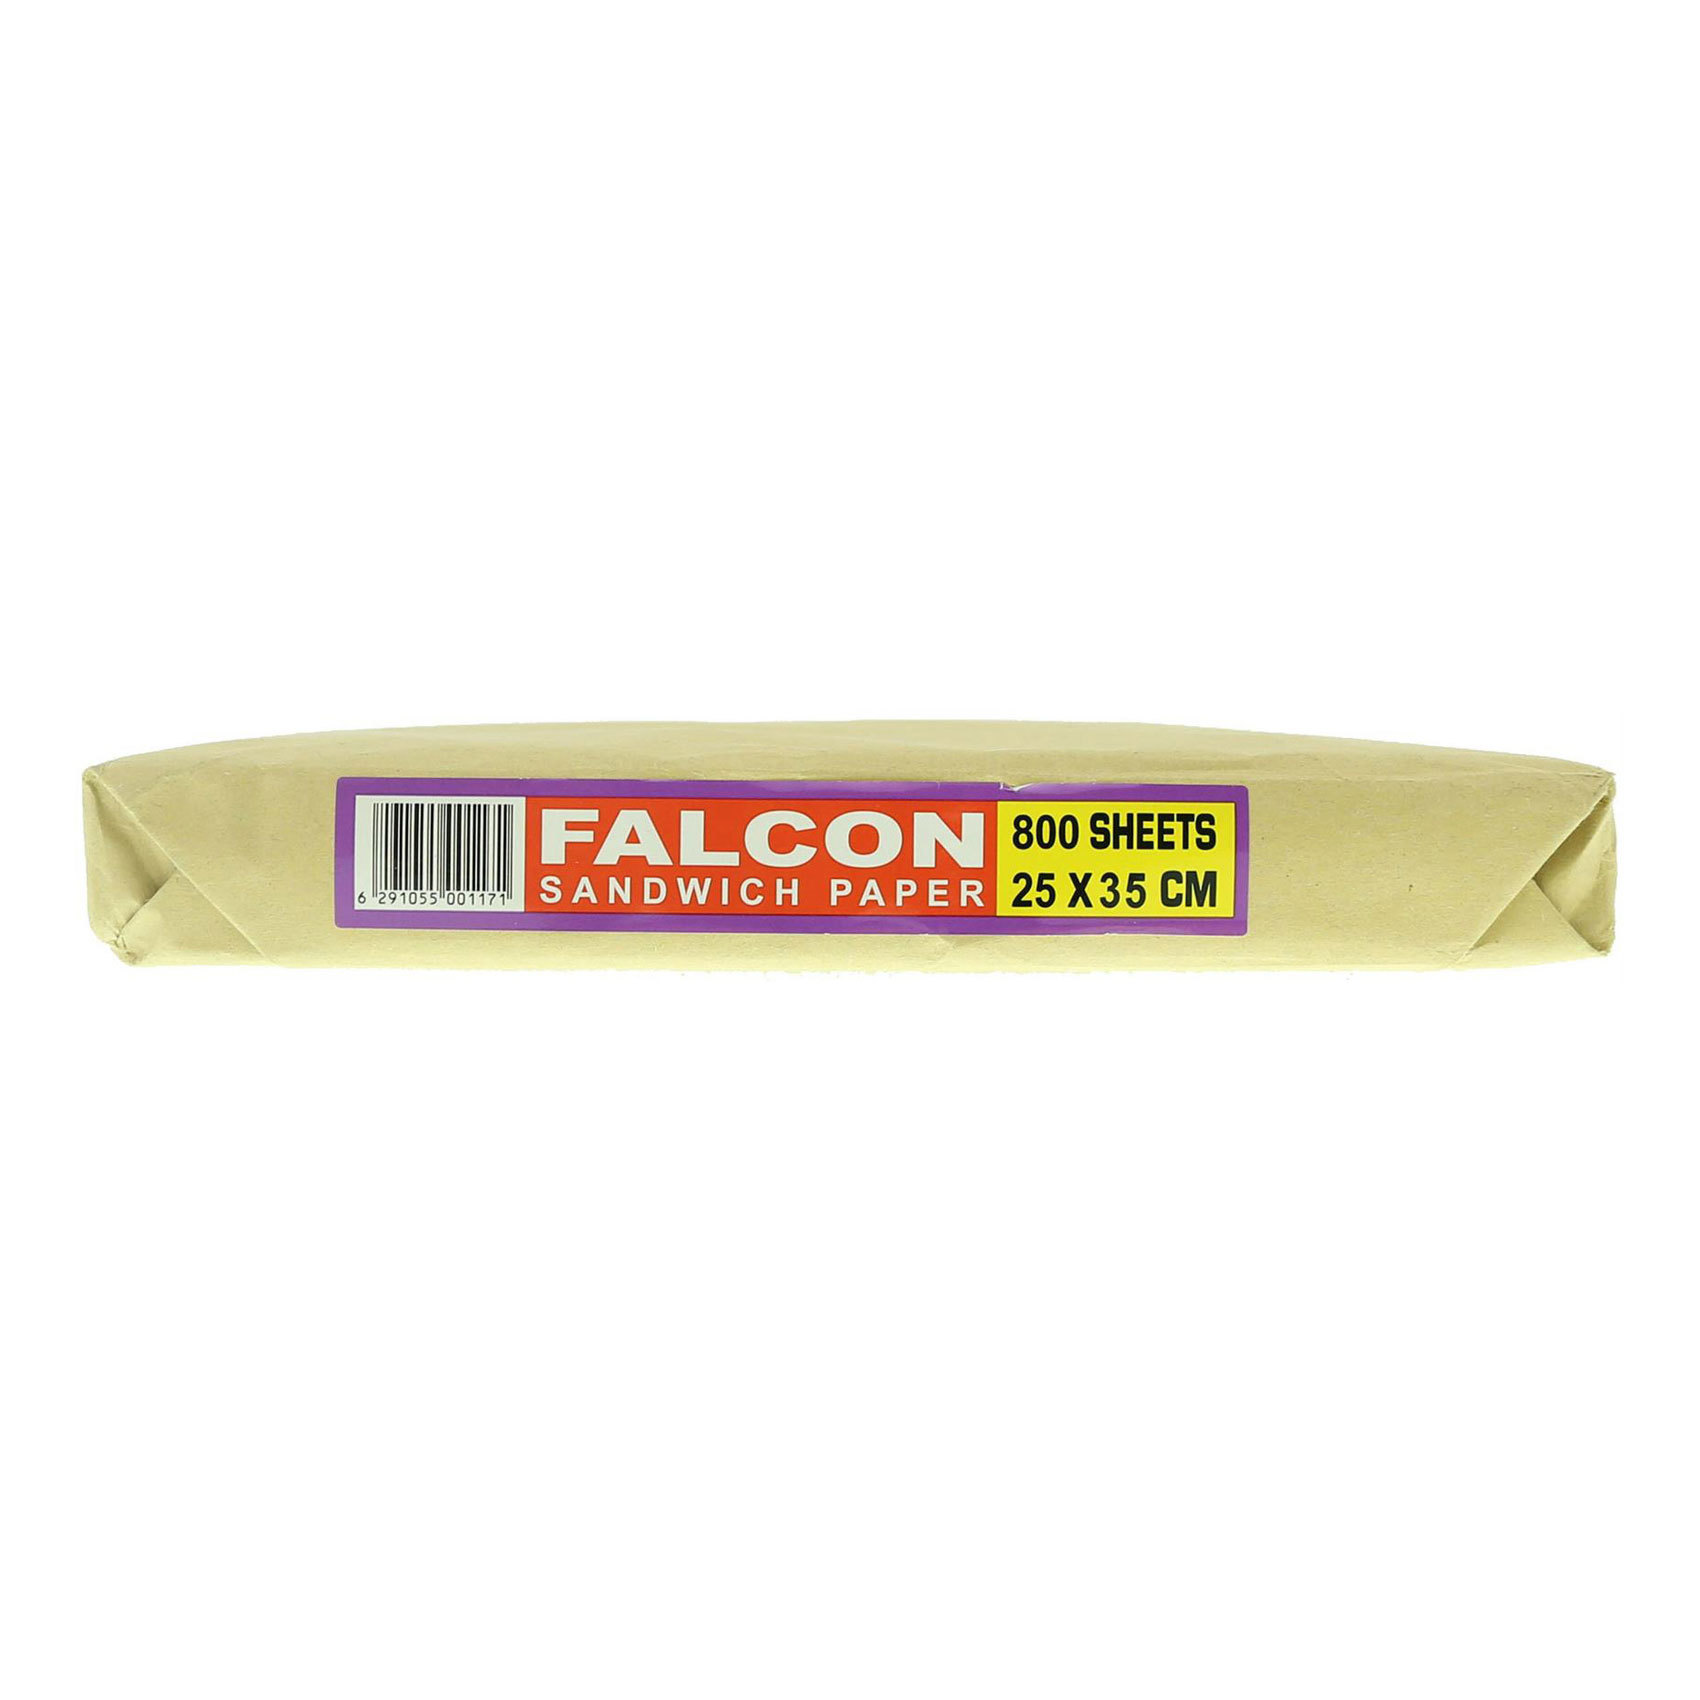 FALCON SANDWICH PAPER 800SHEETS